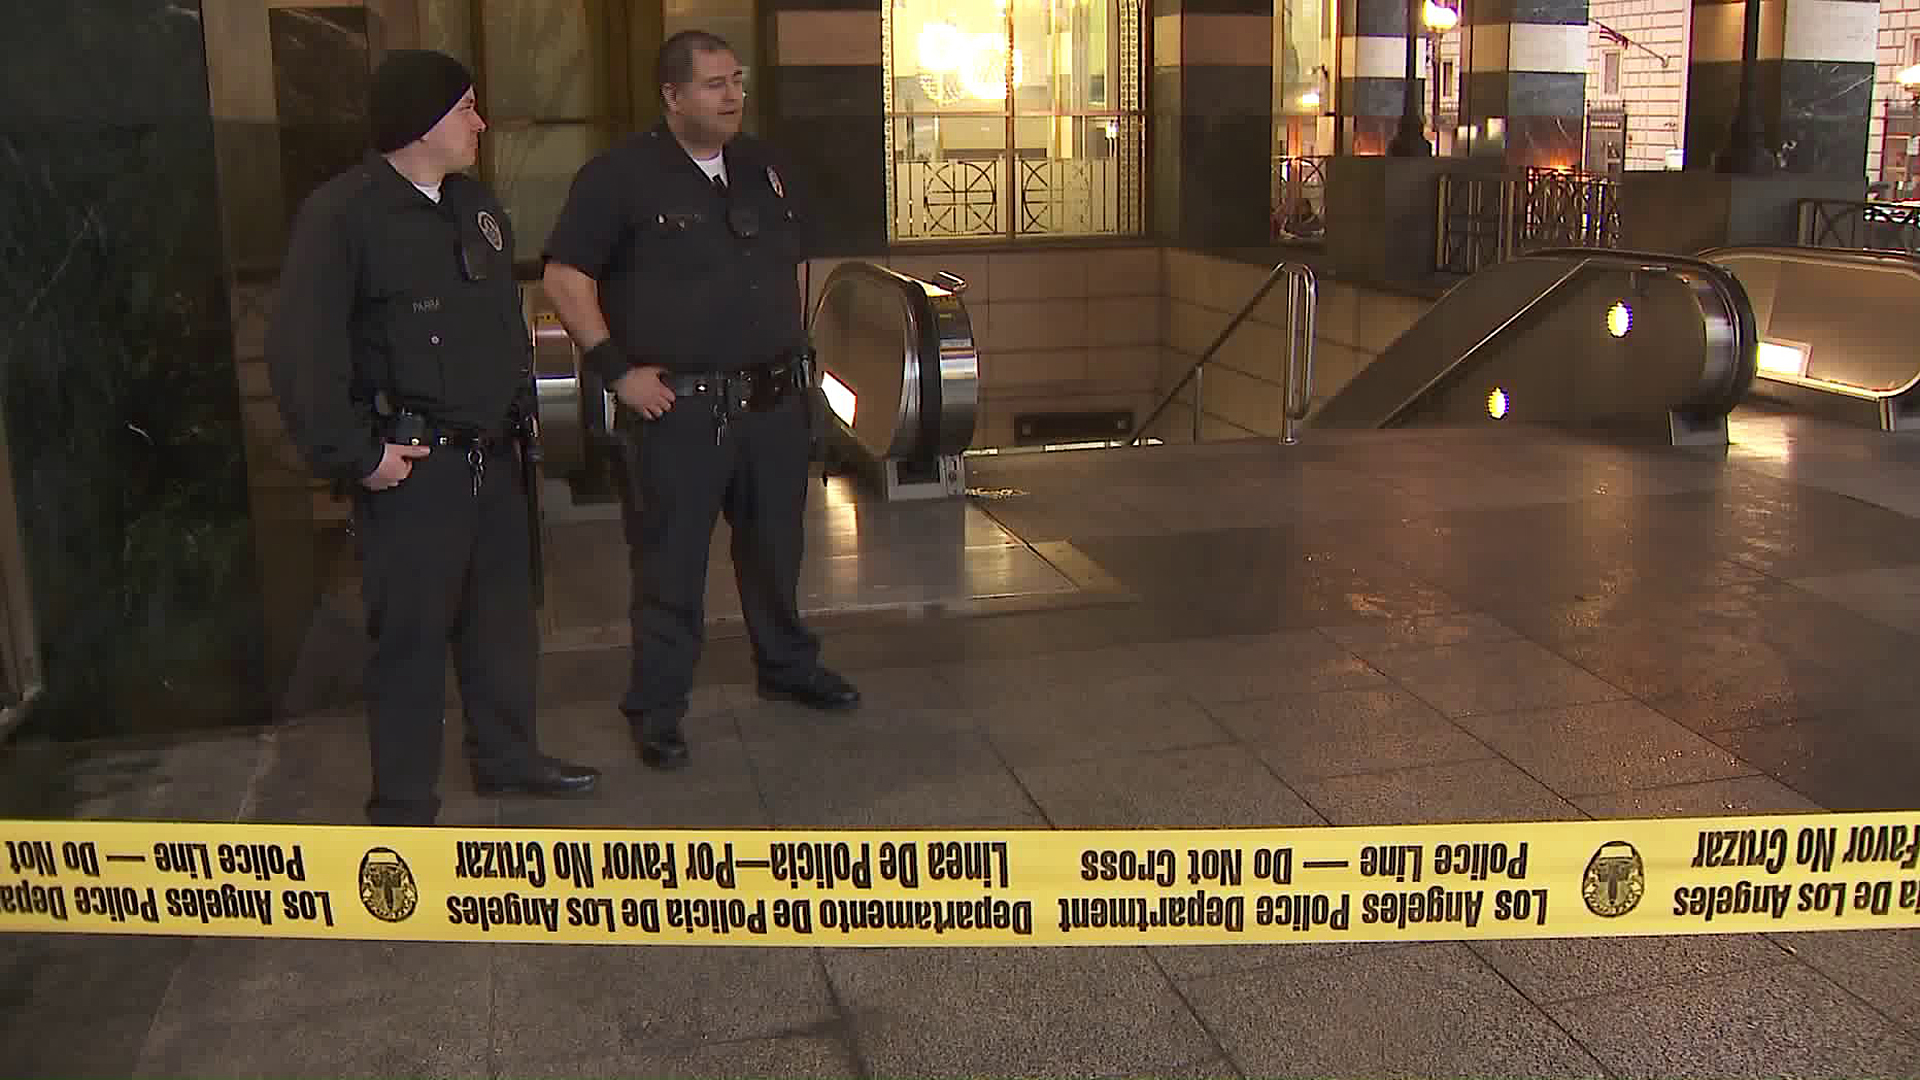 Police respond to a fatal officer-involved shooting in downtown Los Angeles on Feb. 14, 2019. (Credit: KTLA)